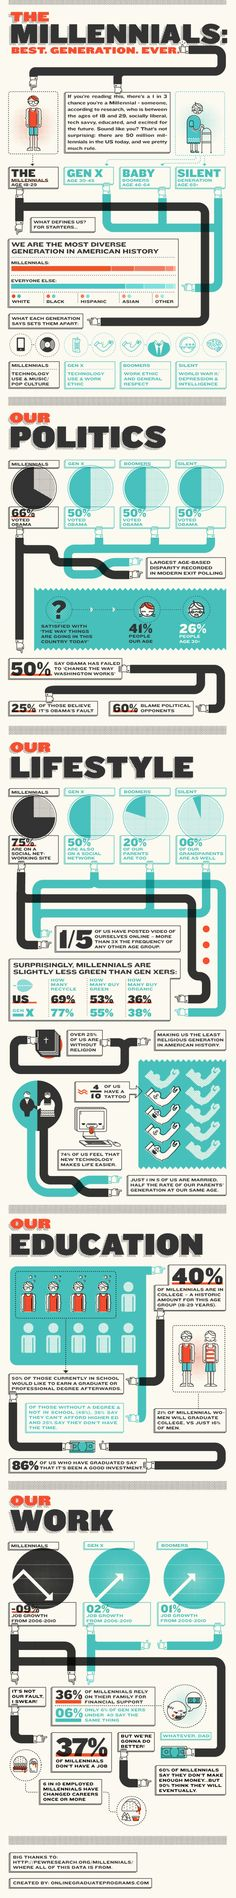 MILLENNIALS - The Best Generation Ever Infographic Infographic by Visual.ly